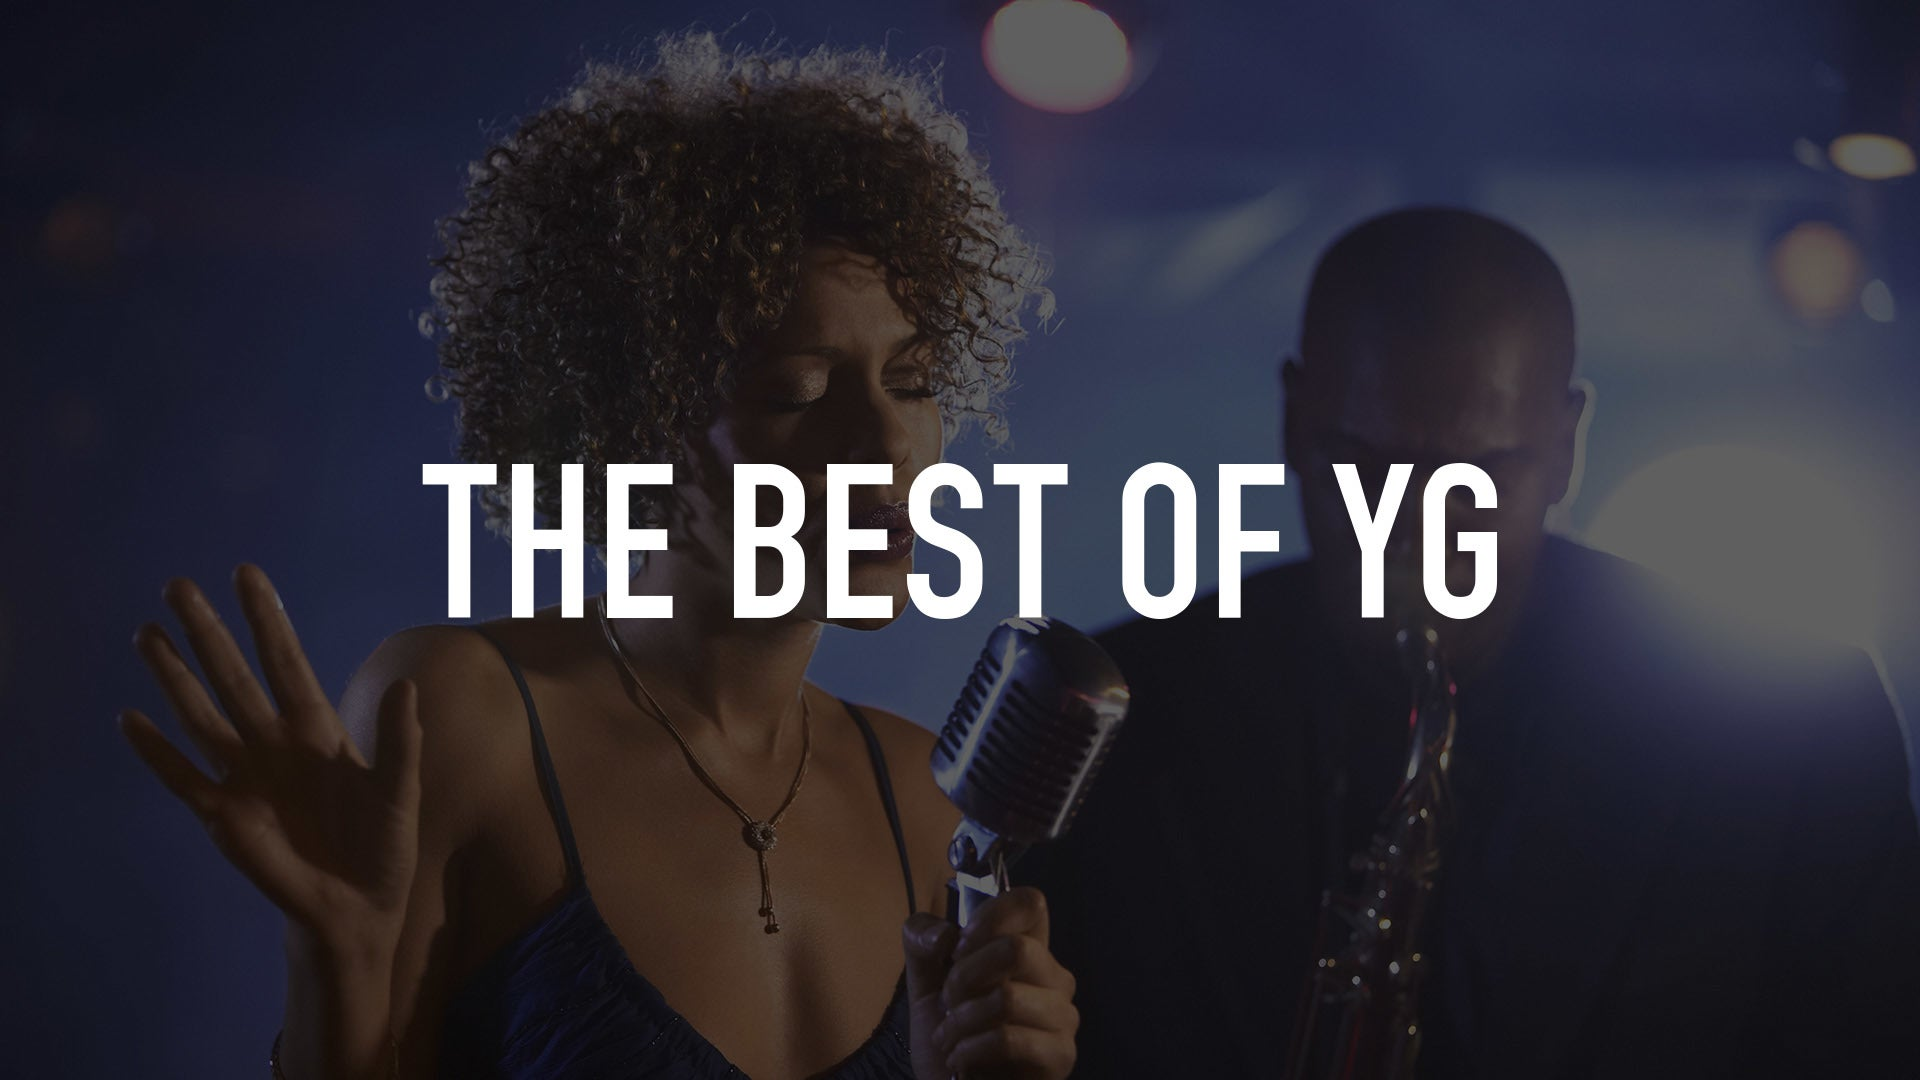 The Best of YG